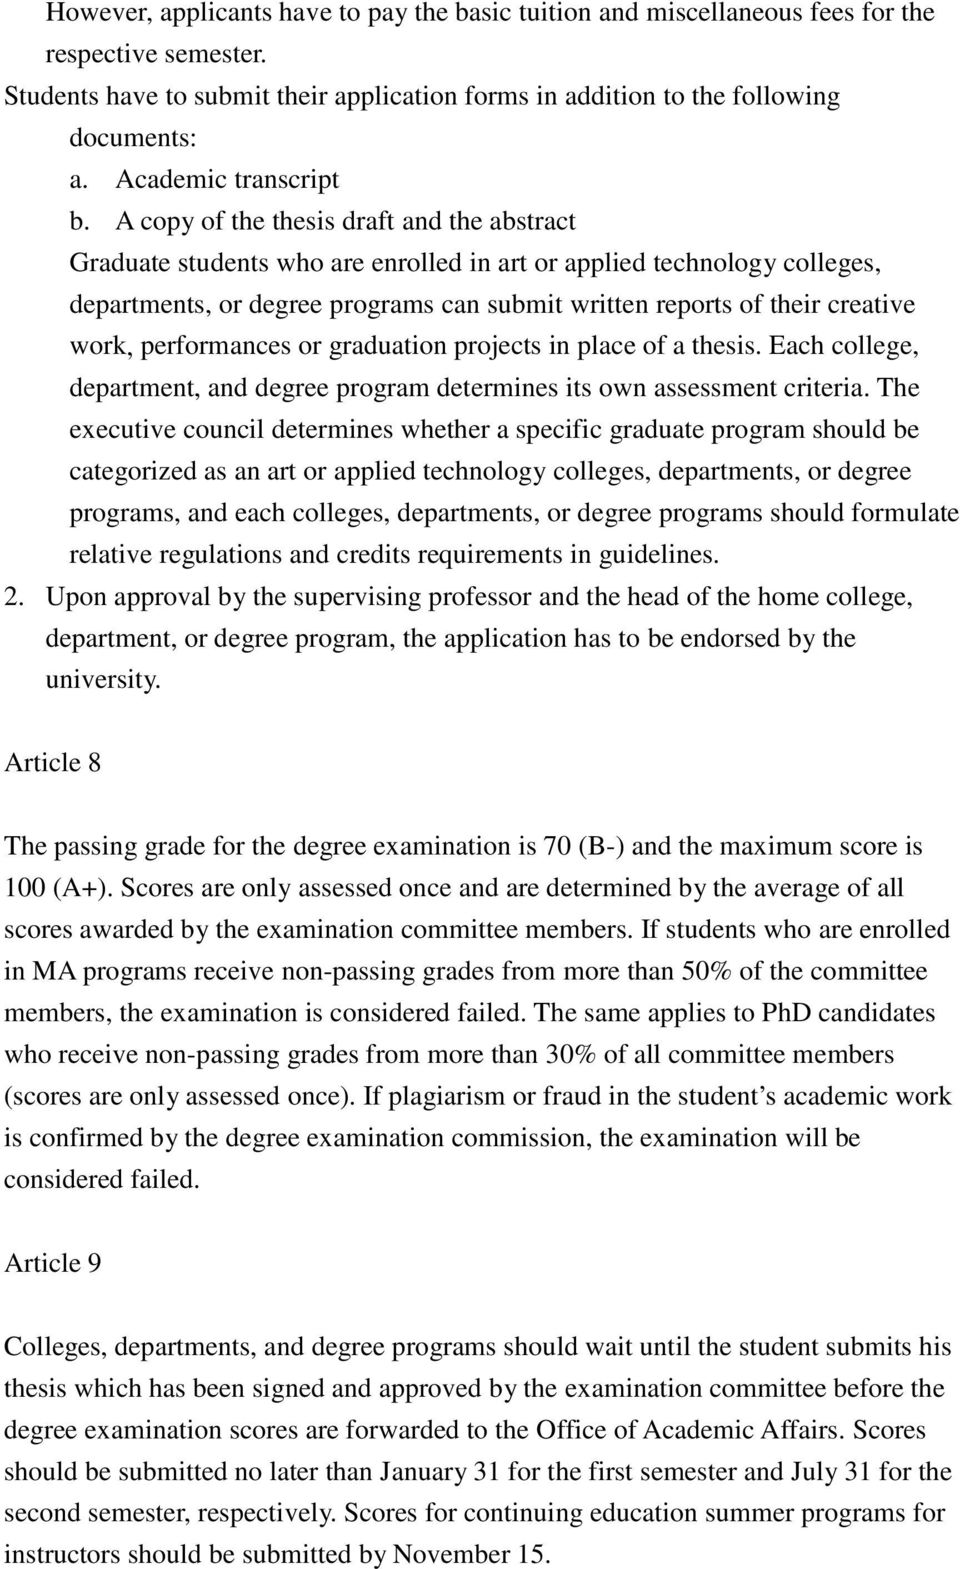 A copy of the thesis draft and the abstract Graduate students who are enrolled in art or applied technology colleges, departments, or degree programs can submit written reports of their creative